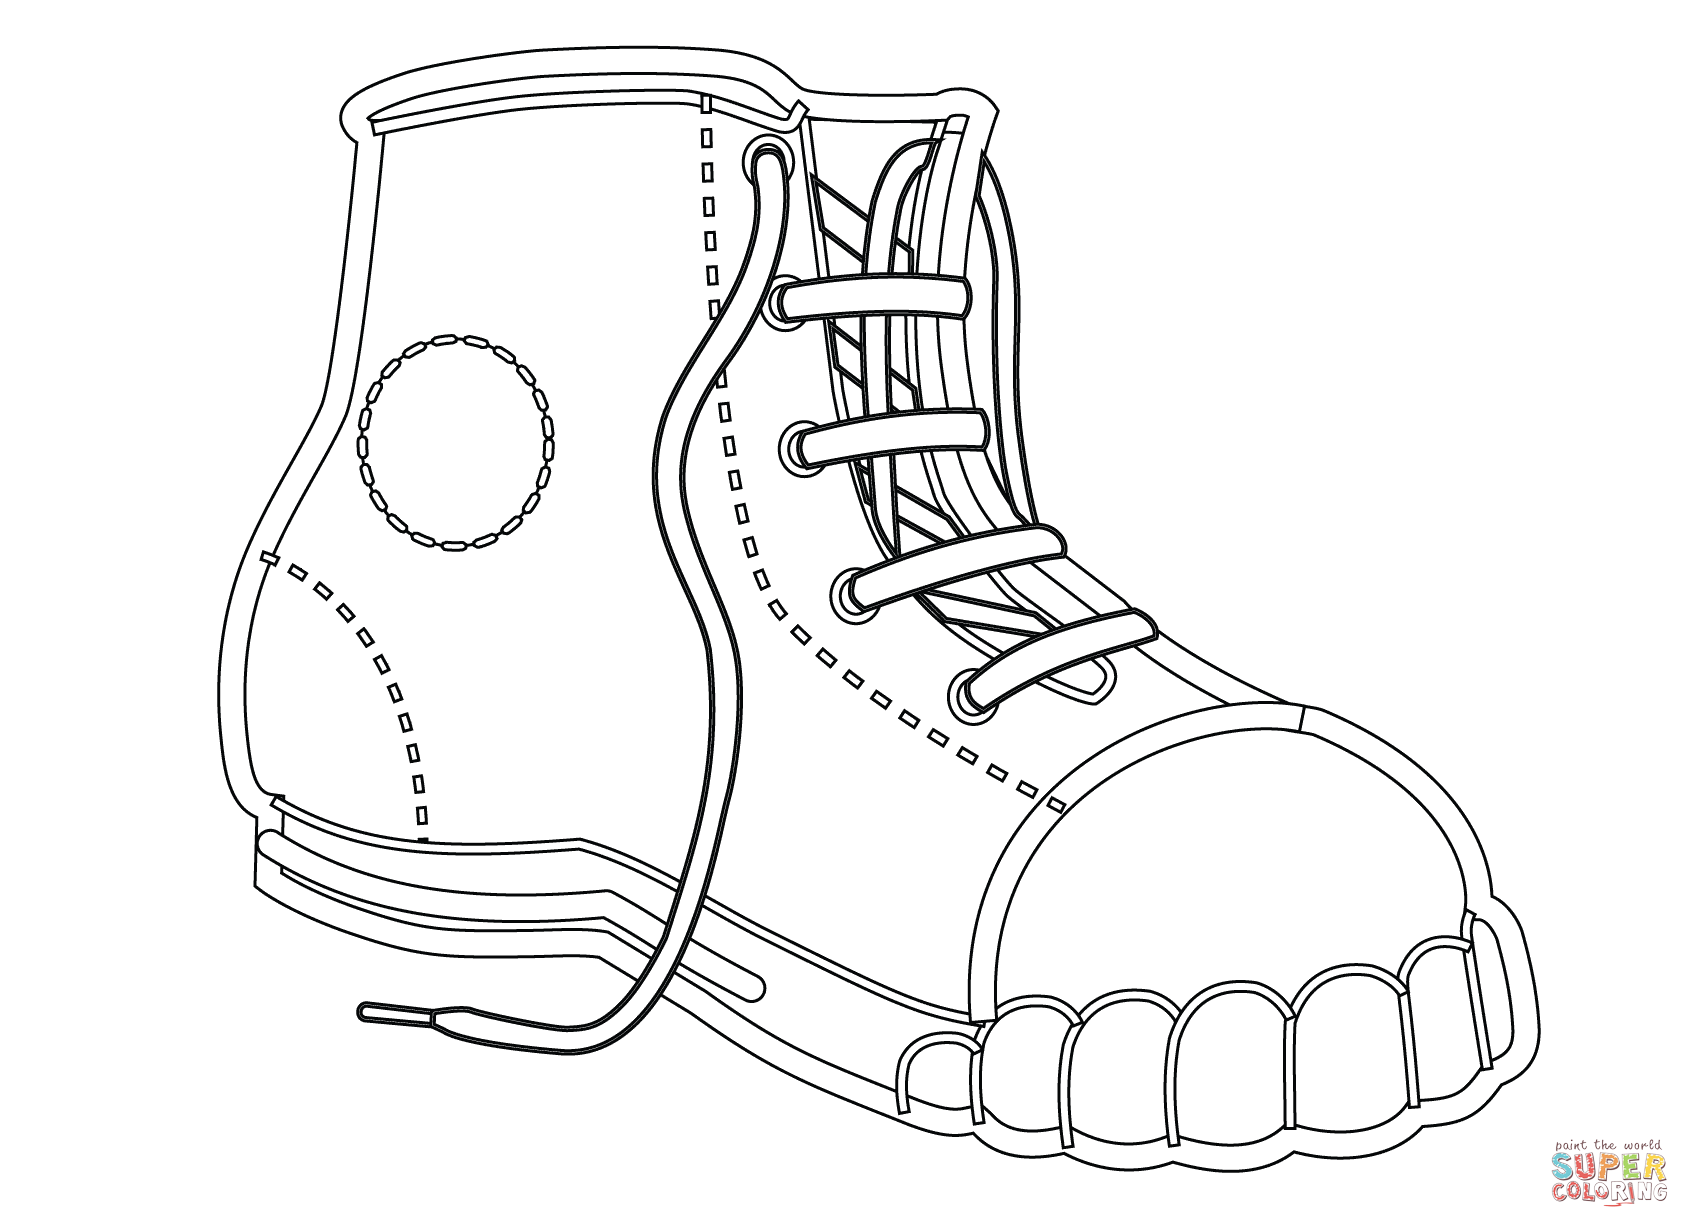 Tennis Shoe Coloring Page At Getcolorings